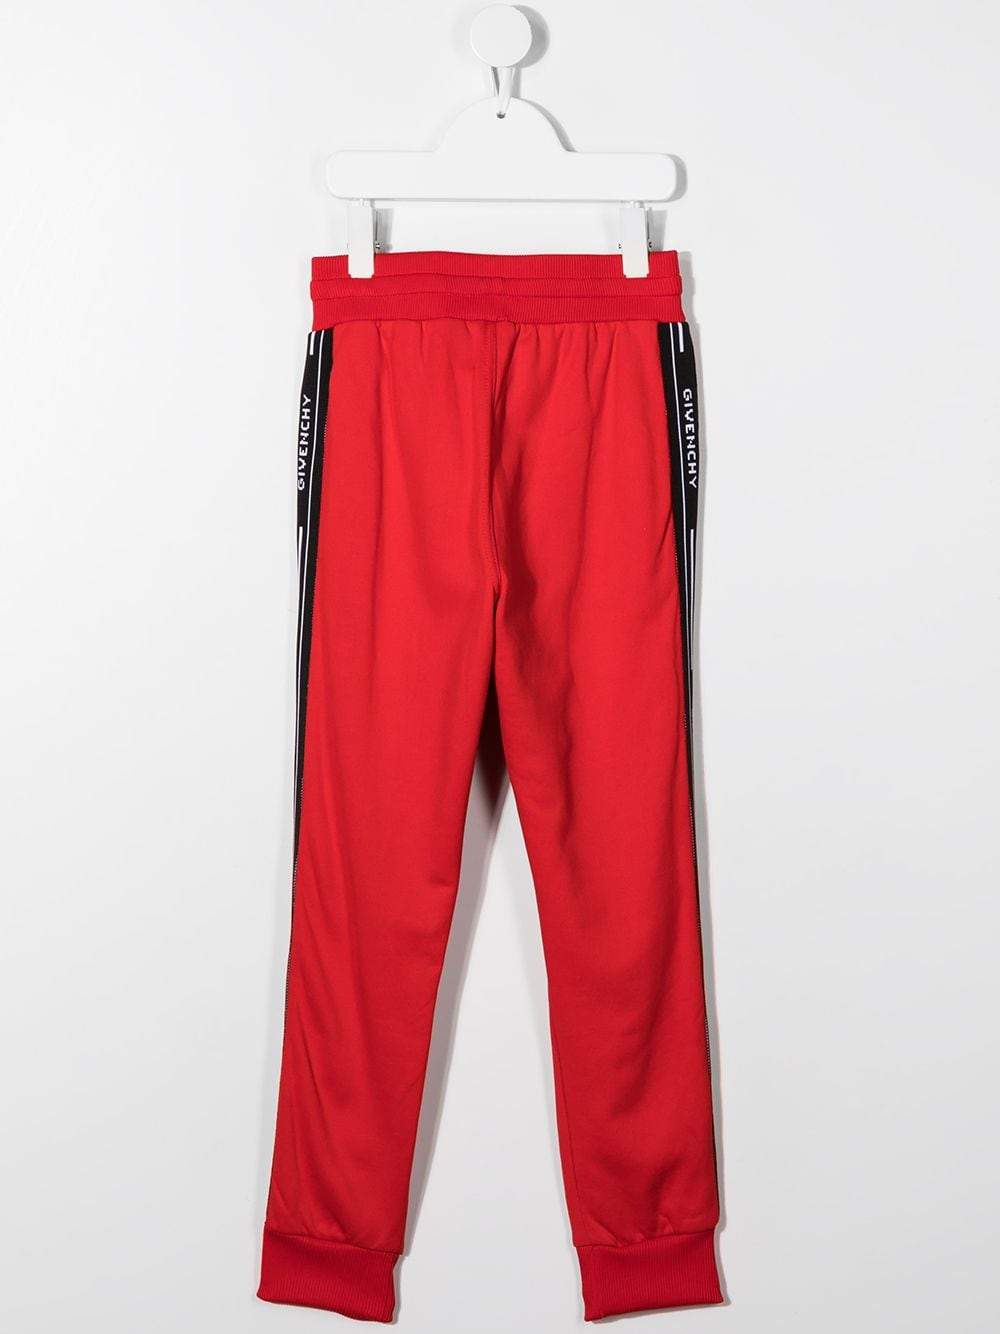 GIVENCHY KIDS Tape Logo Sweatpants Red - Maison De Fashion